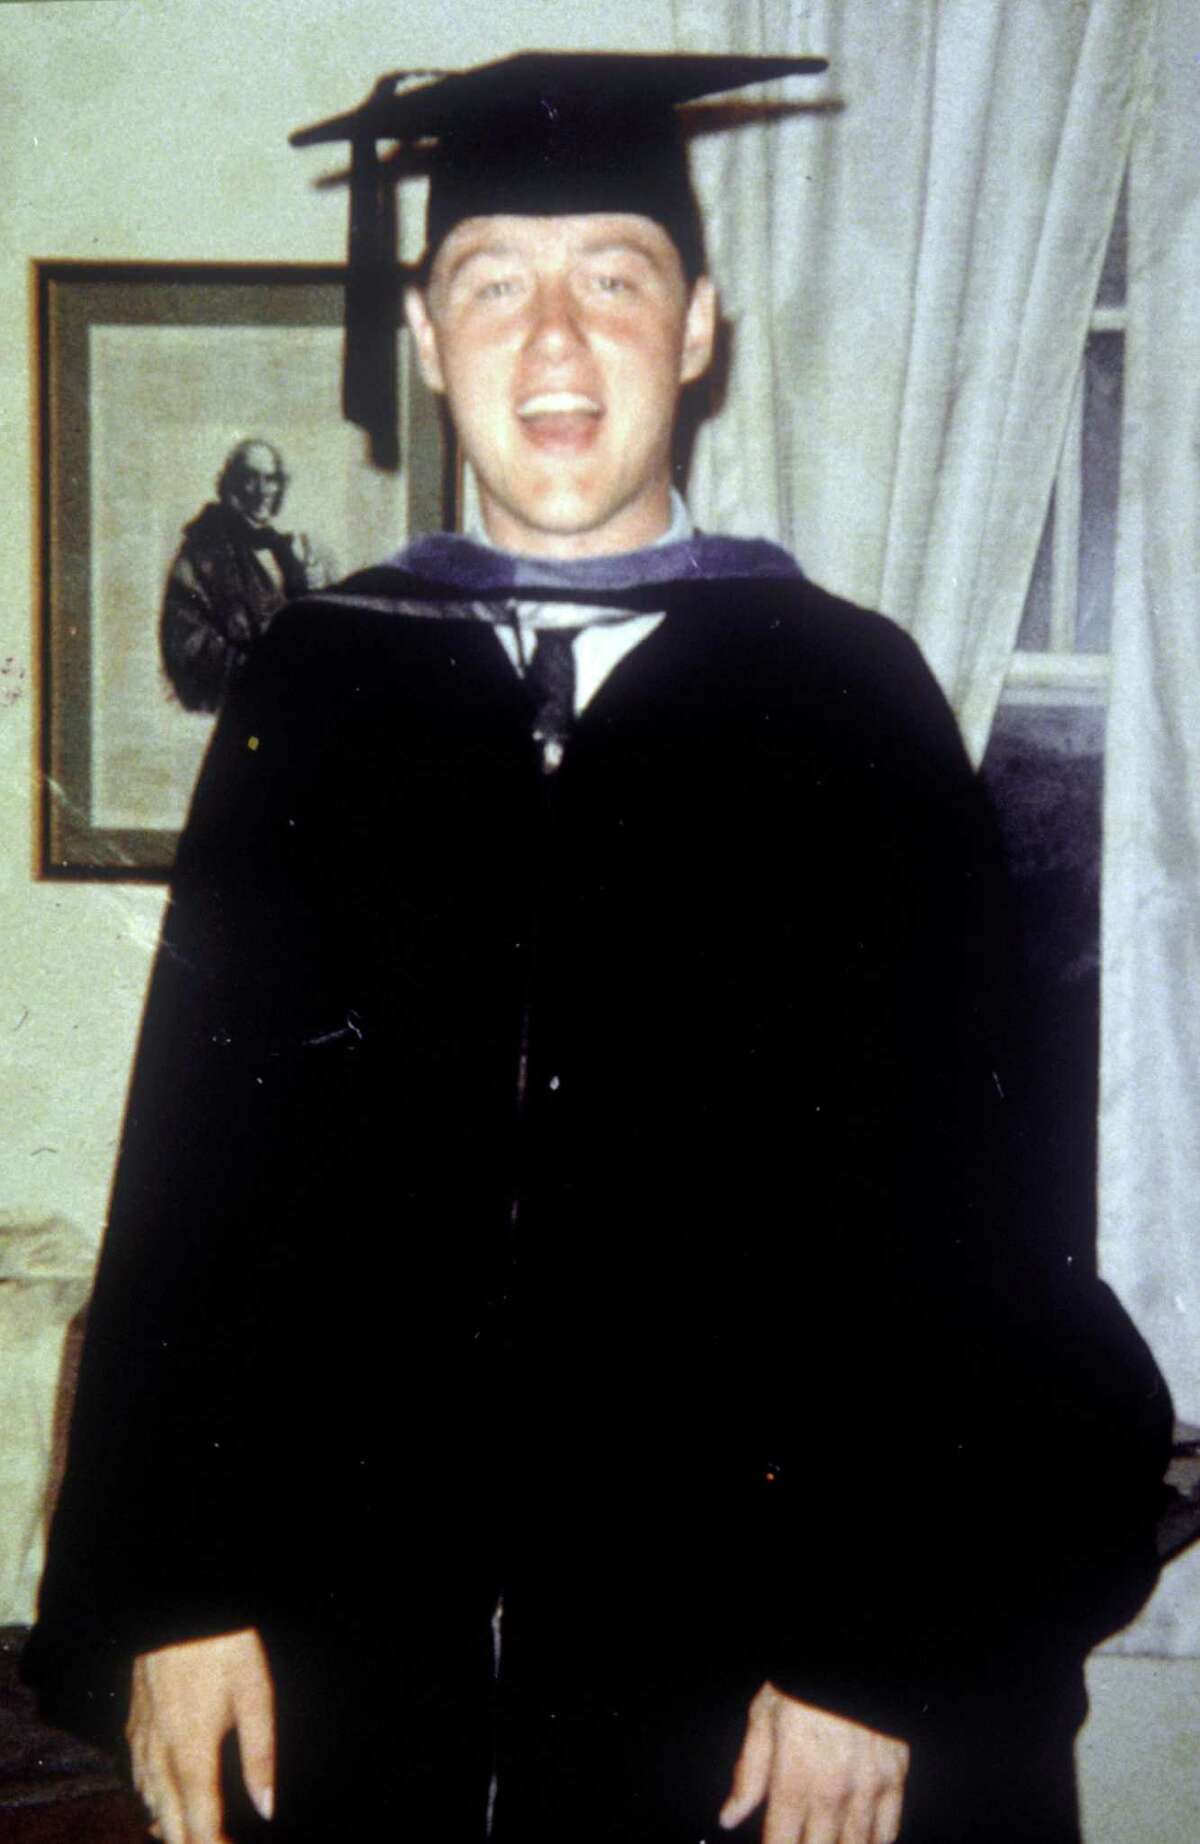 Bill Clinton during his younger years.